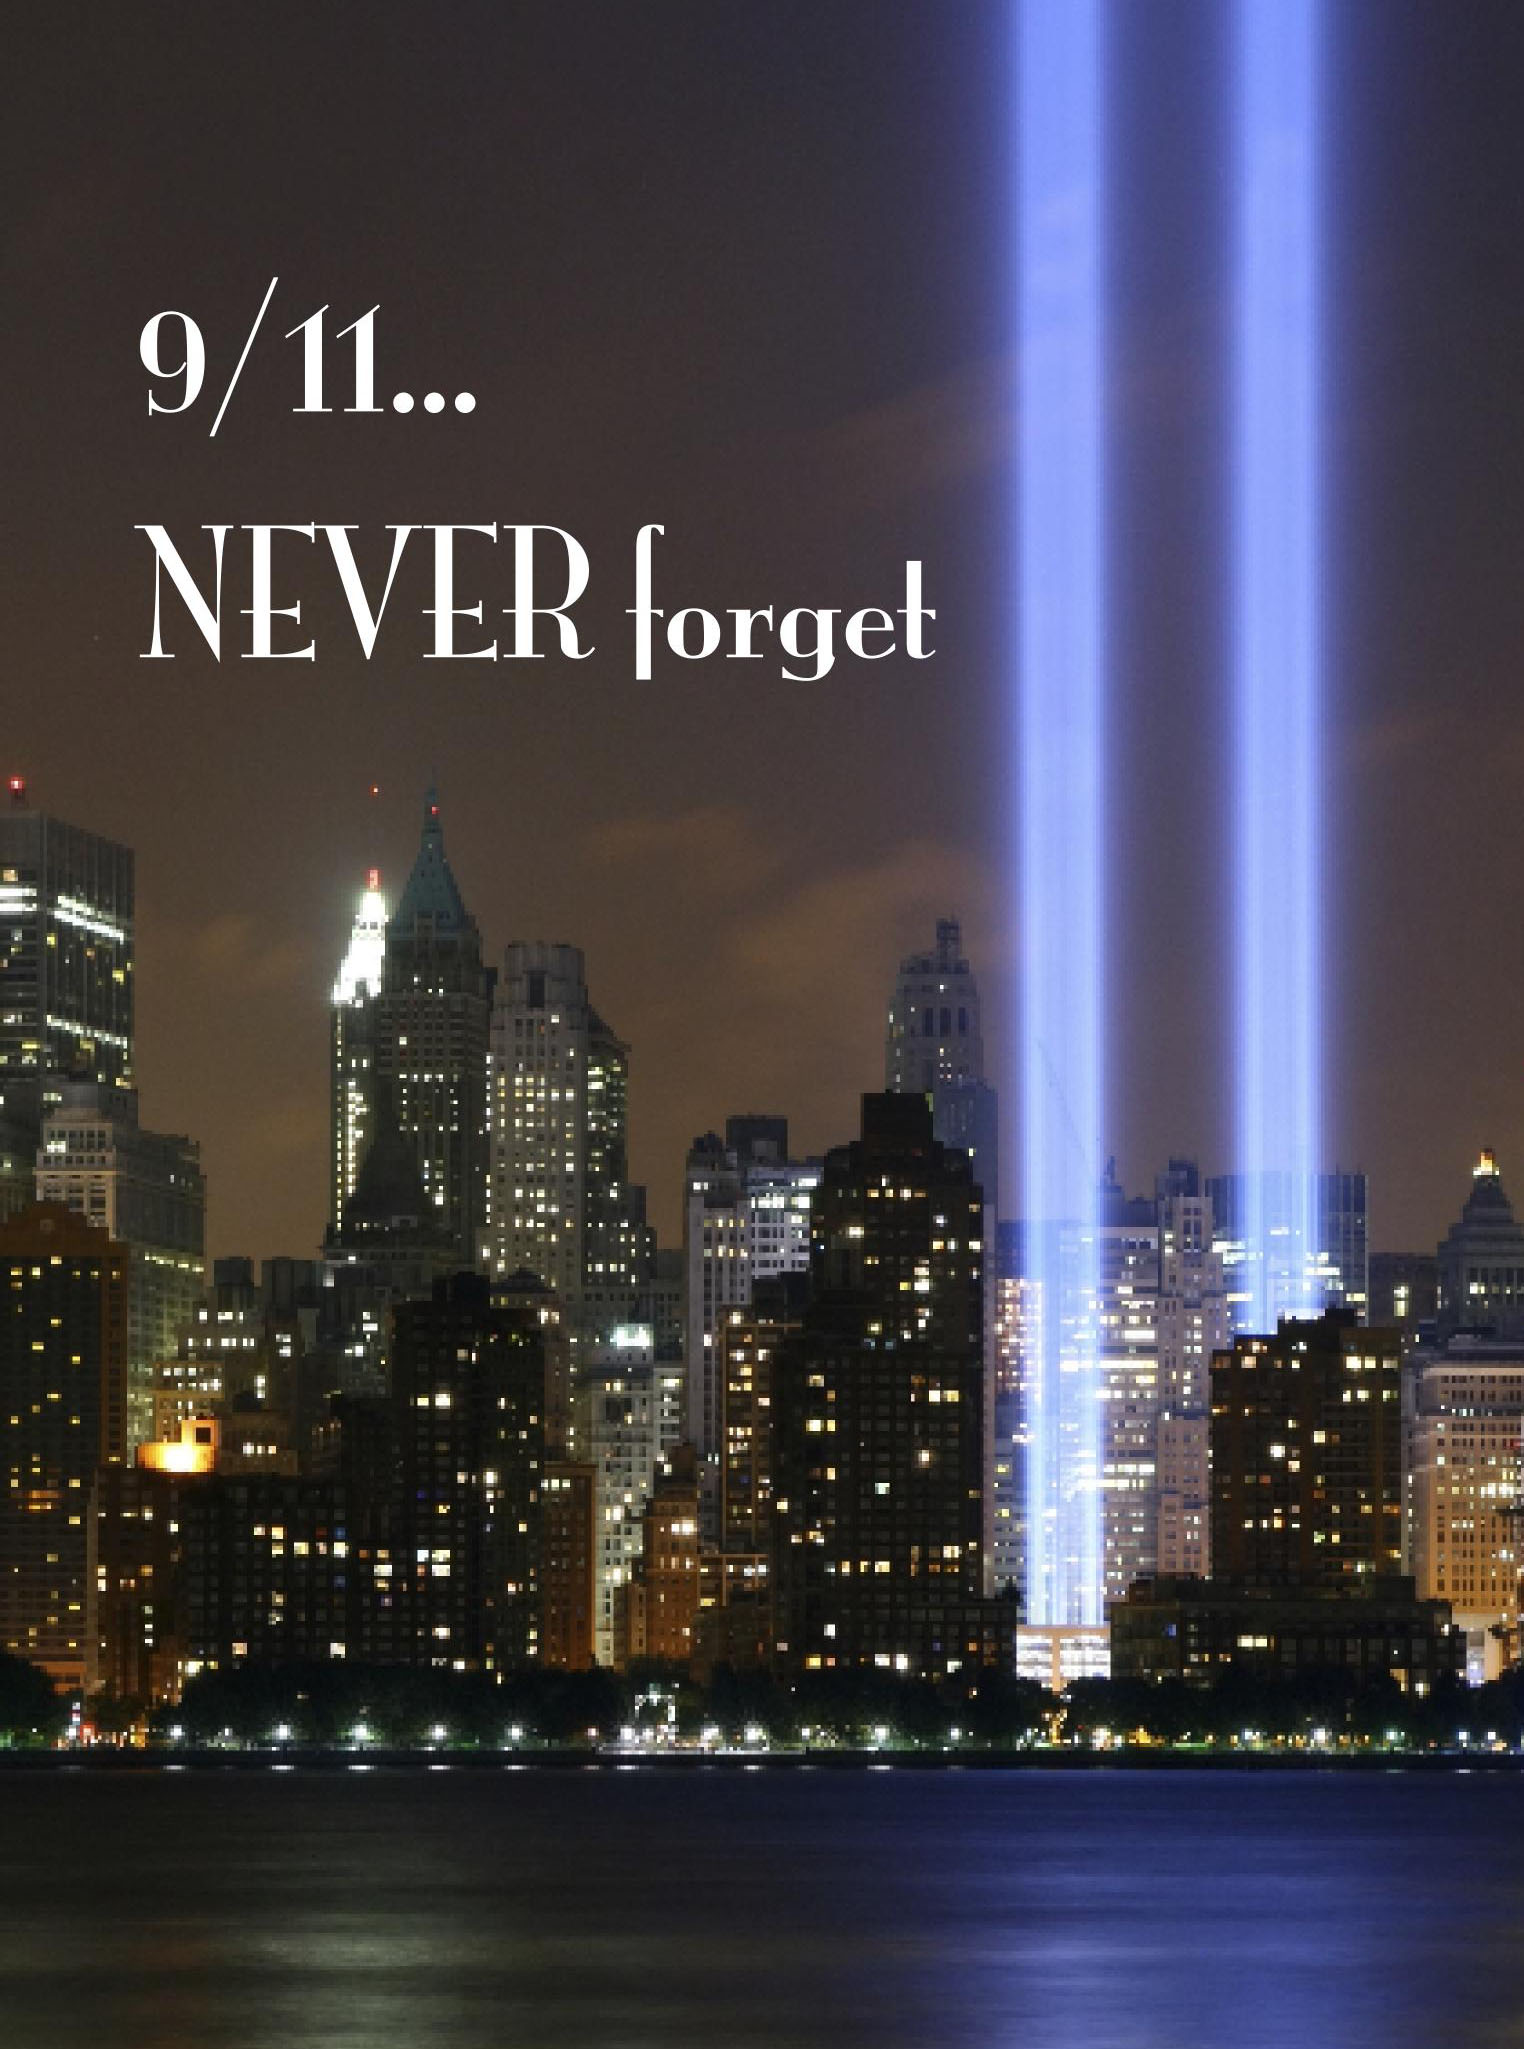 Free Never Forget 9 11 Cliparts, Download Free Clip Art.